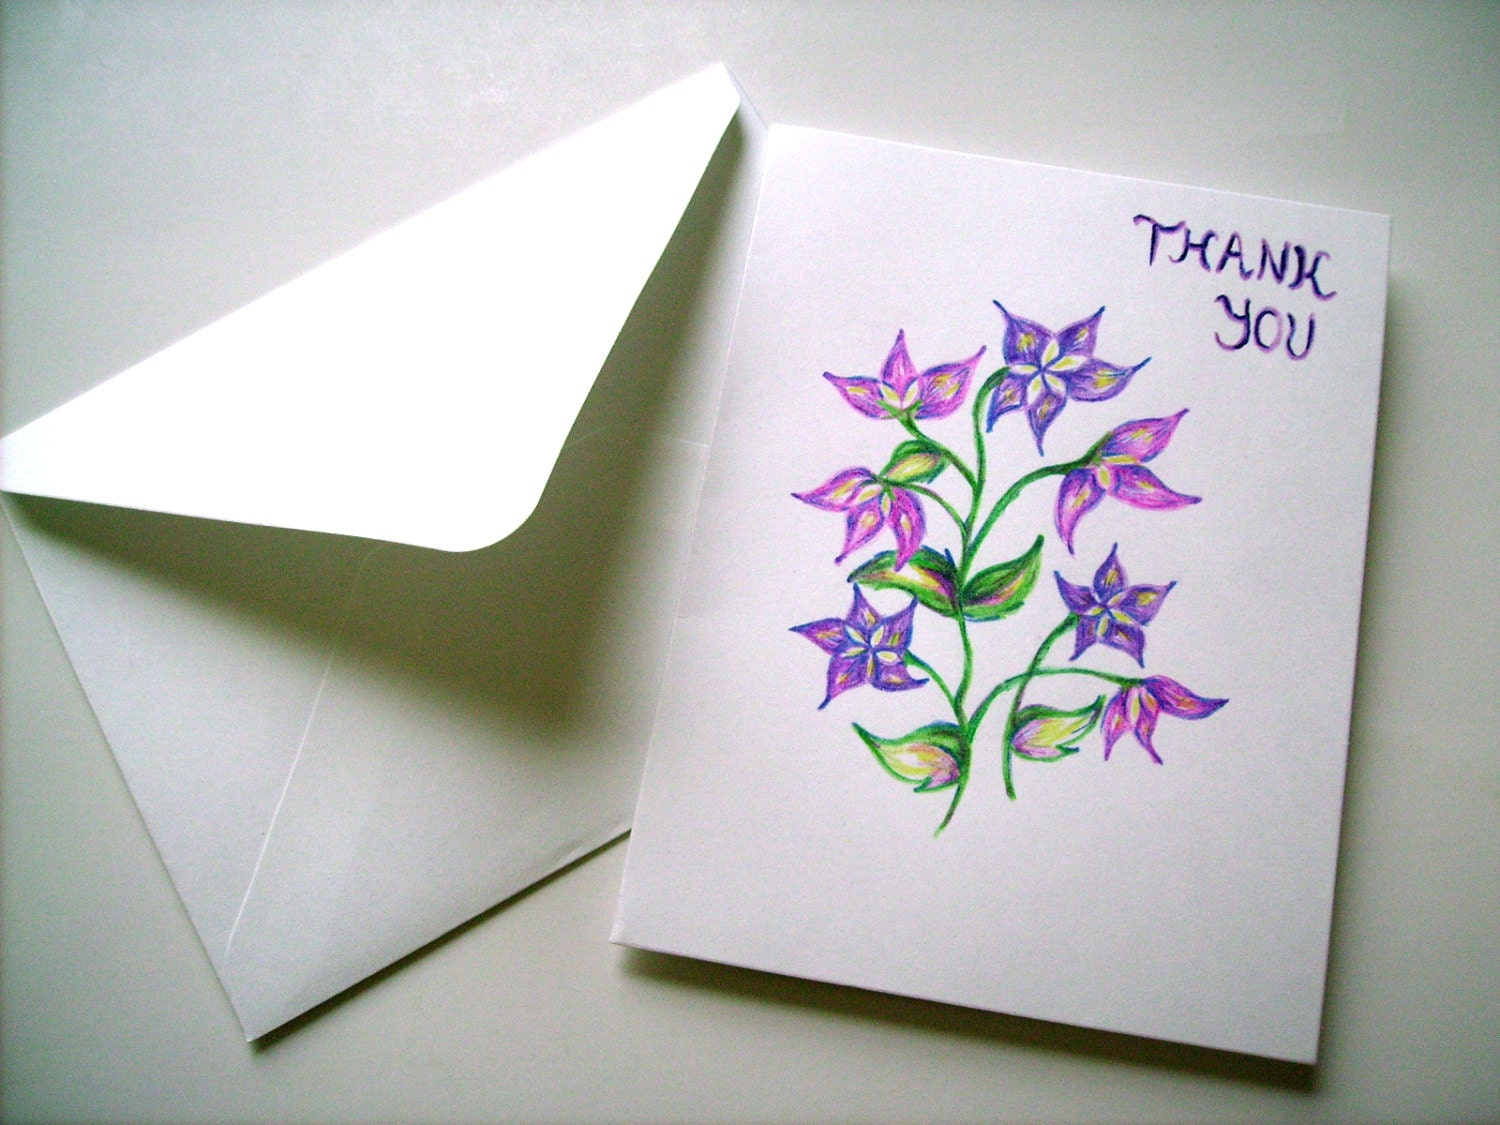 Hand drawn thank you card blank card greeting card floral zoom kristyandbryce Choice Image